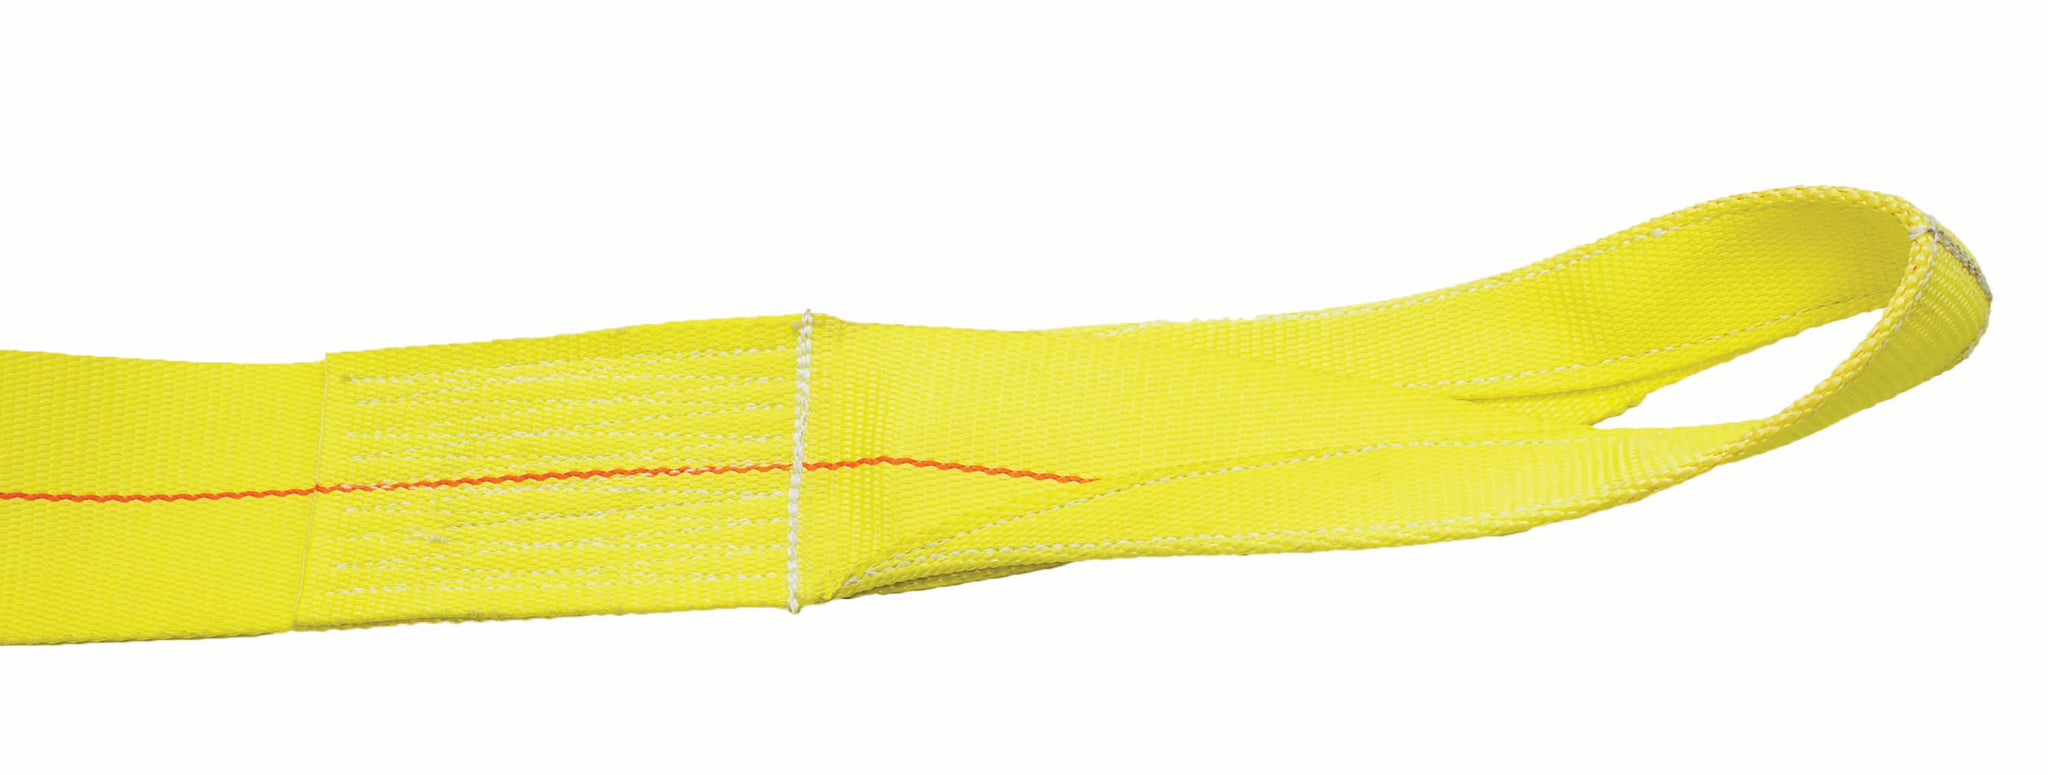 "3"" WINCH STRAP WITH SEWN EYE - 27FT"